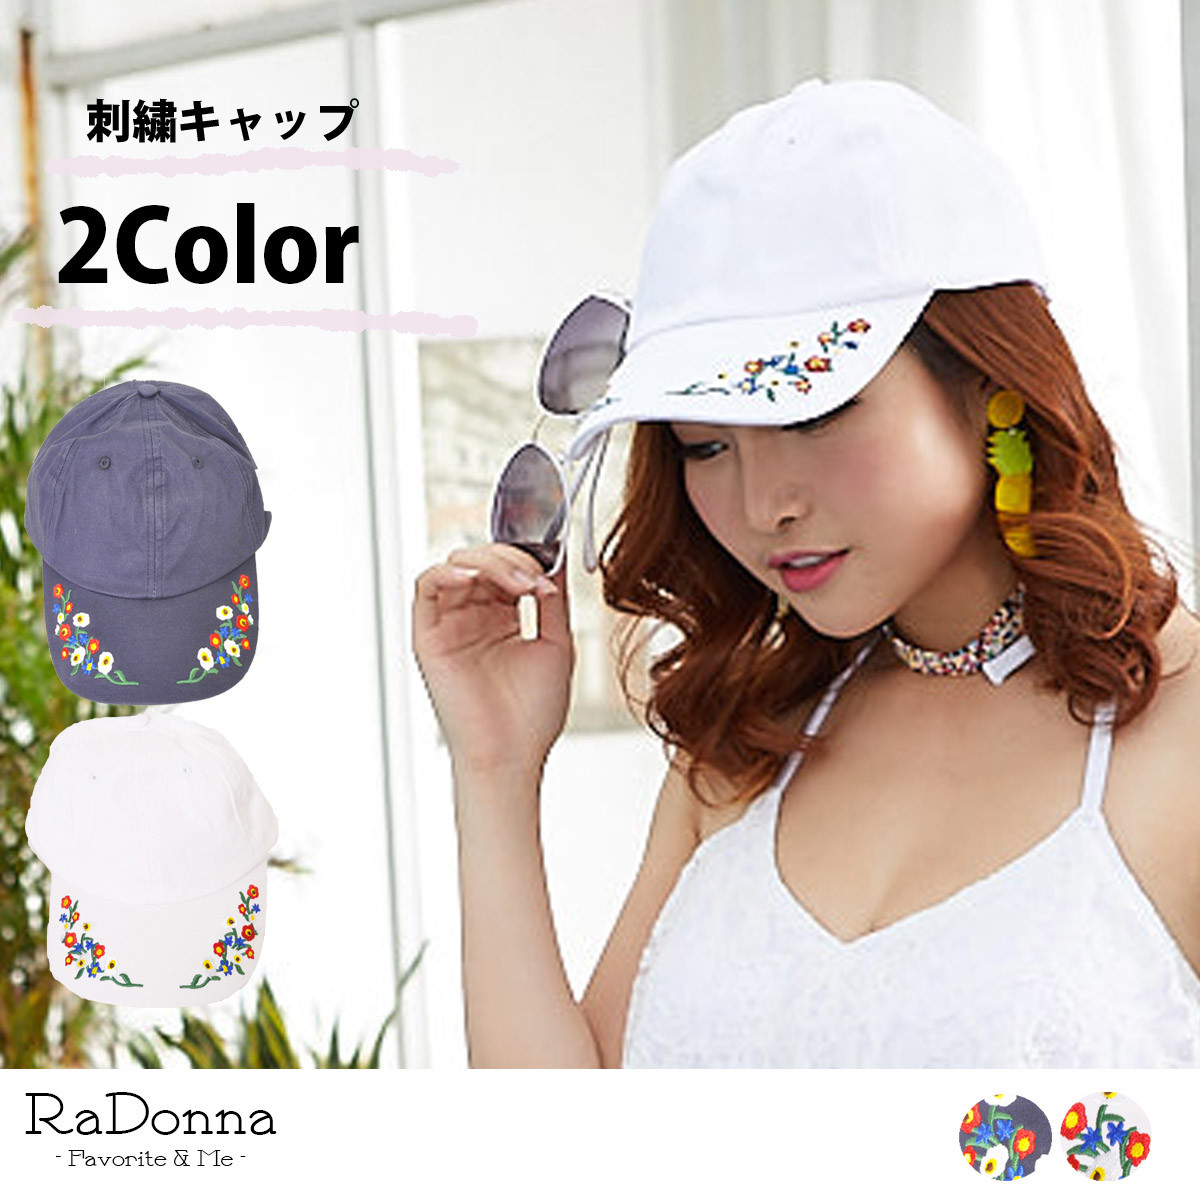 Embroidery Cap | Export Japanese products to the world at wholesale